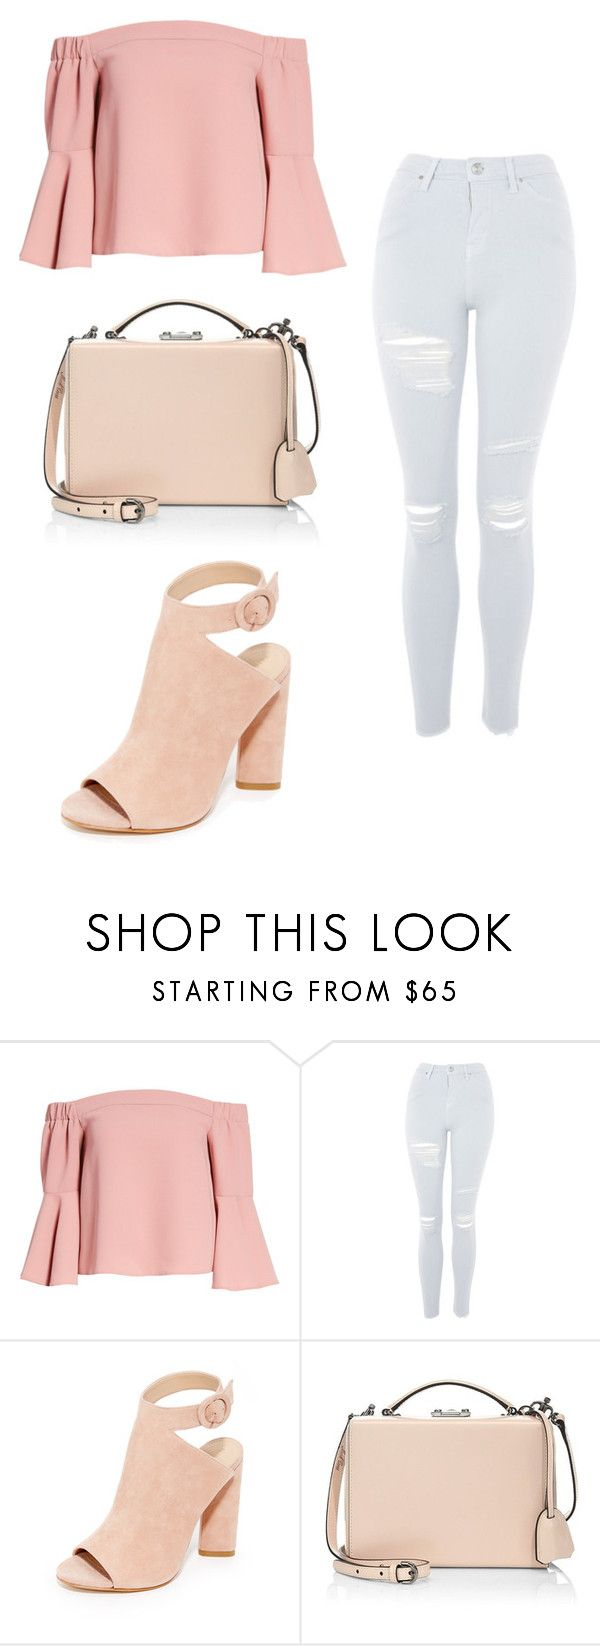 """""""Sin título #20"""" by v0guemendes on Polyvore featuring moda, Topshop, Kendall + Kylie y Mark Cross"""